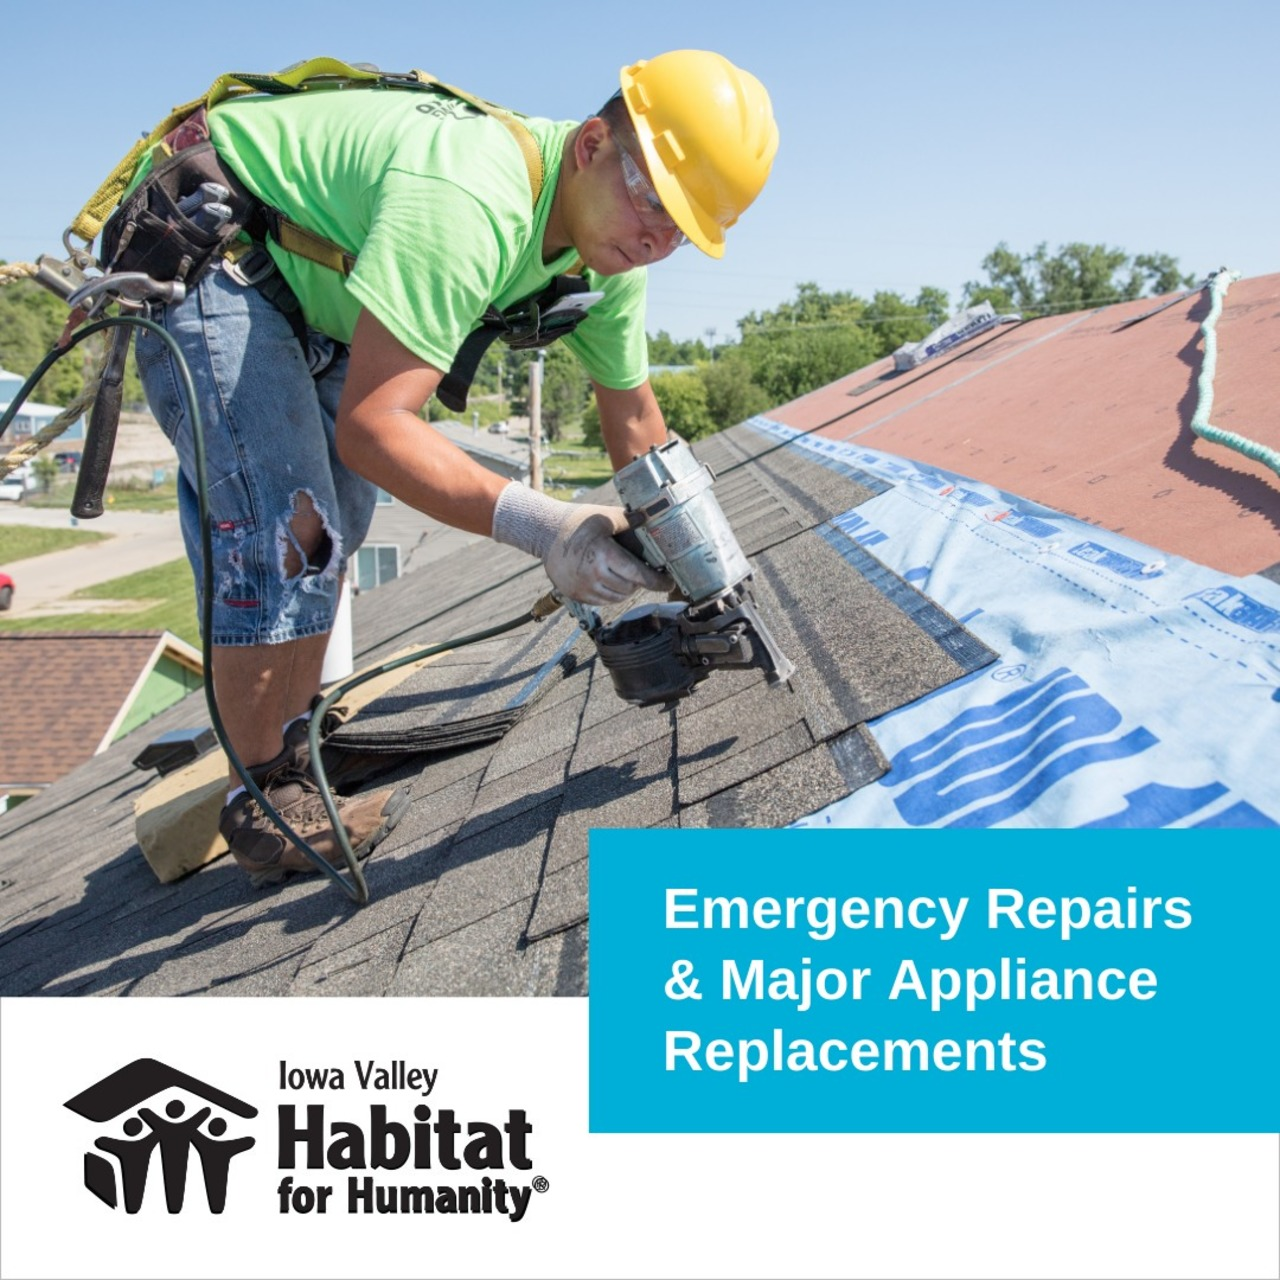 Emergency Repairs and Major Appliance Replacements